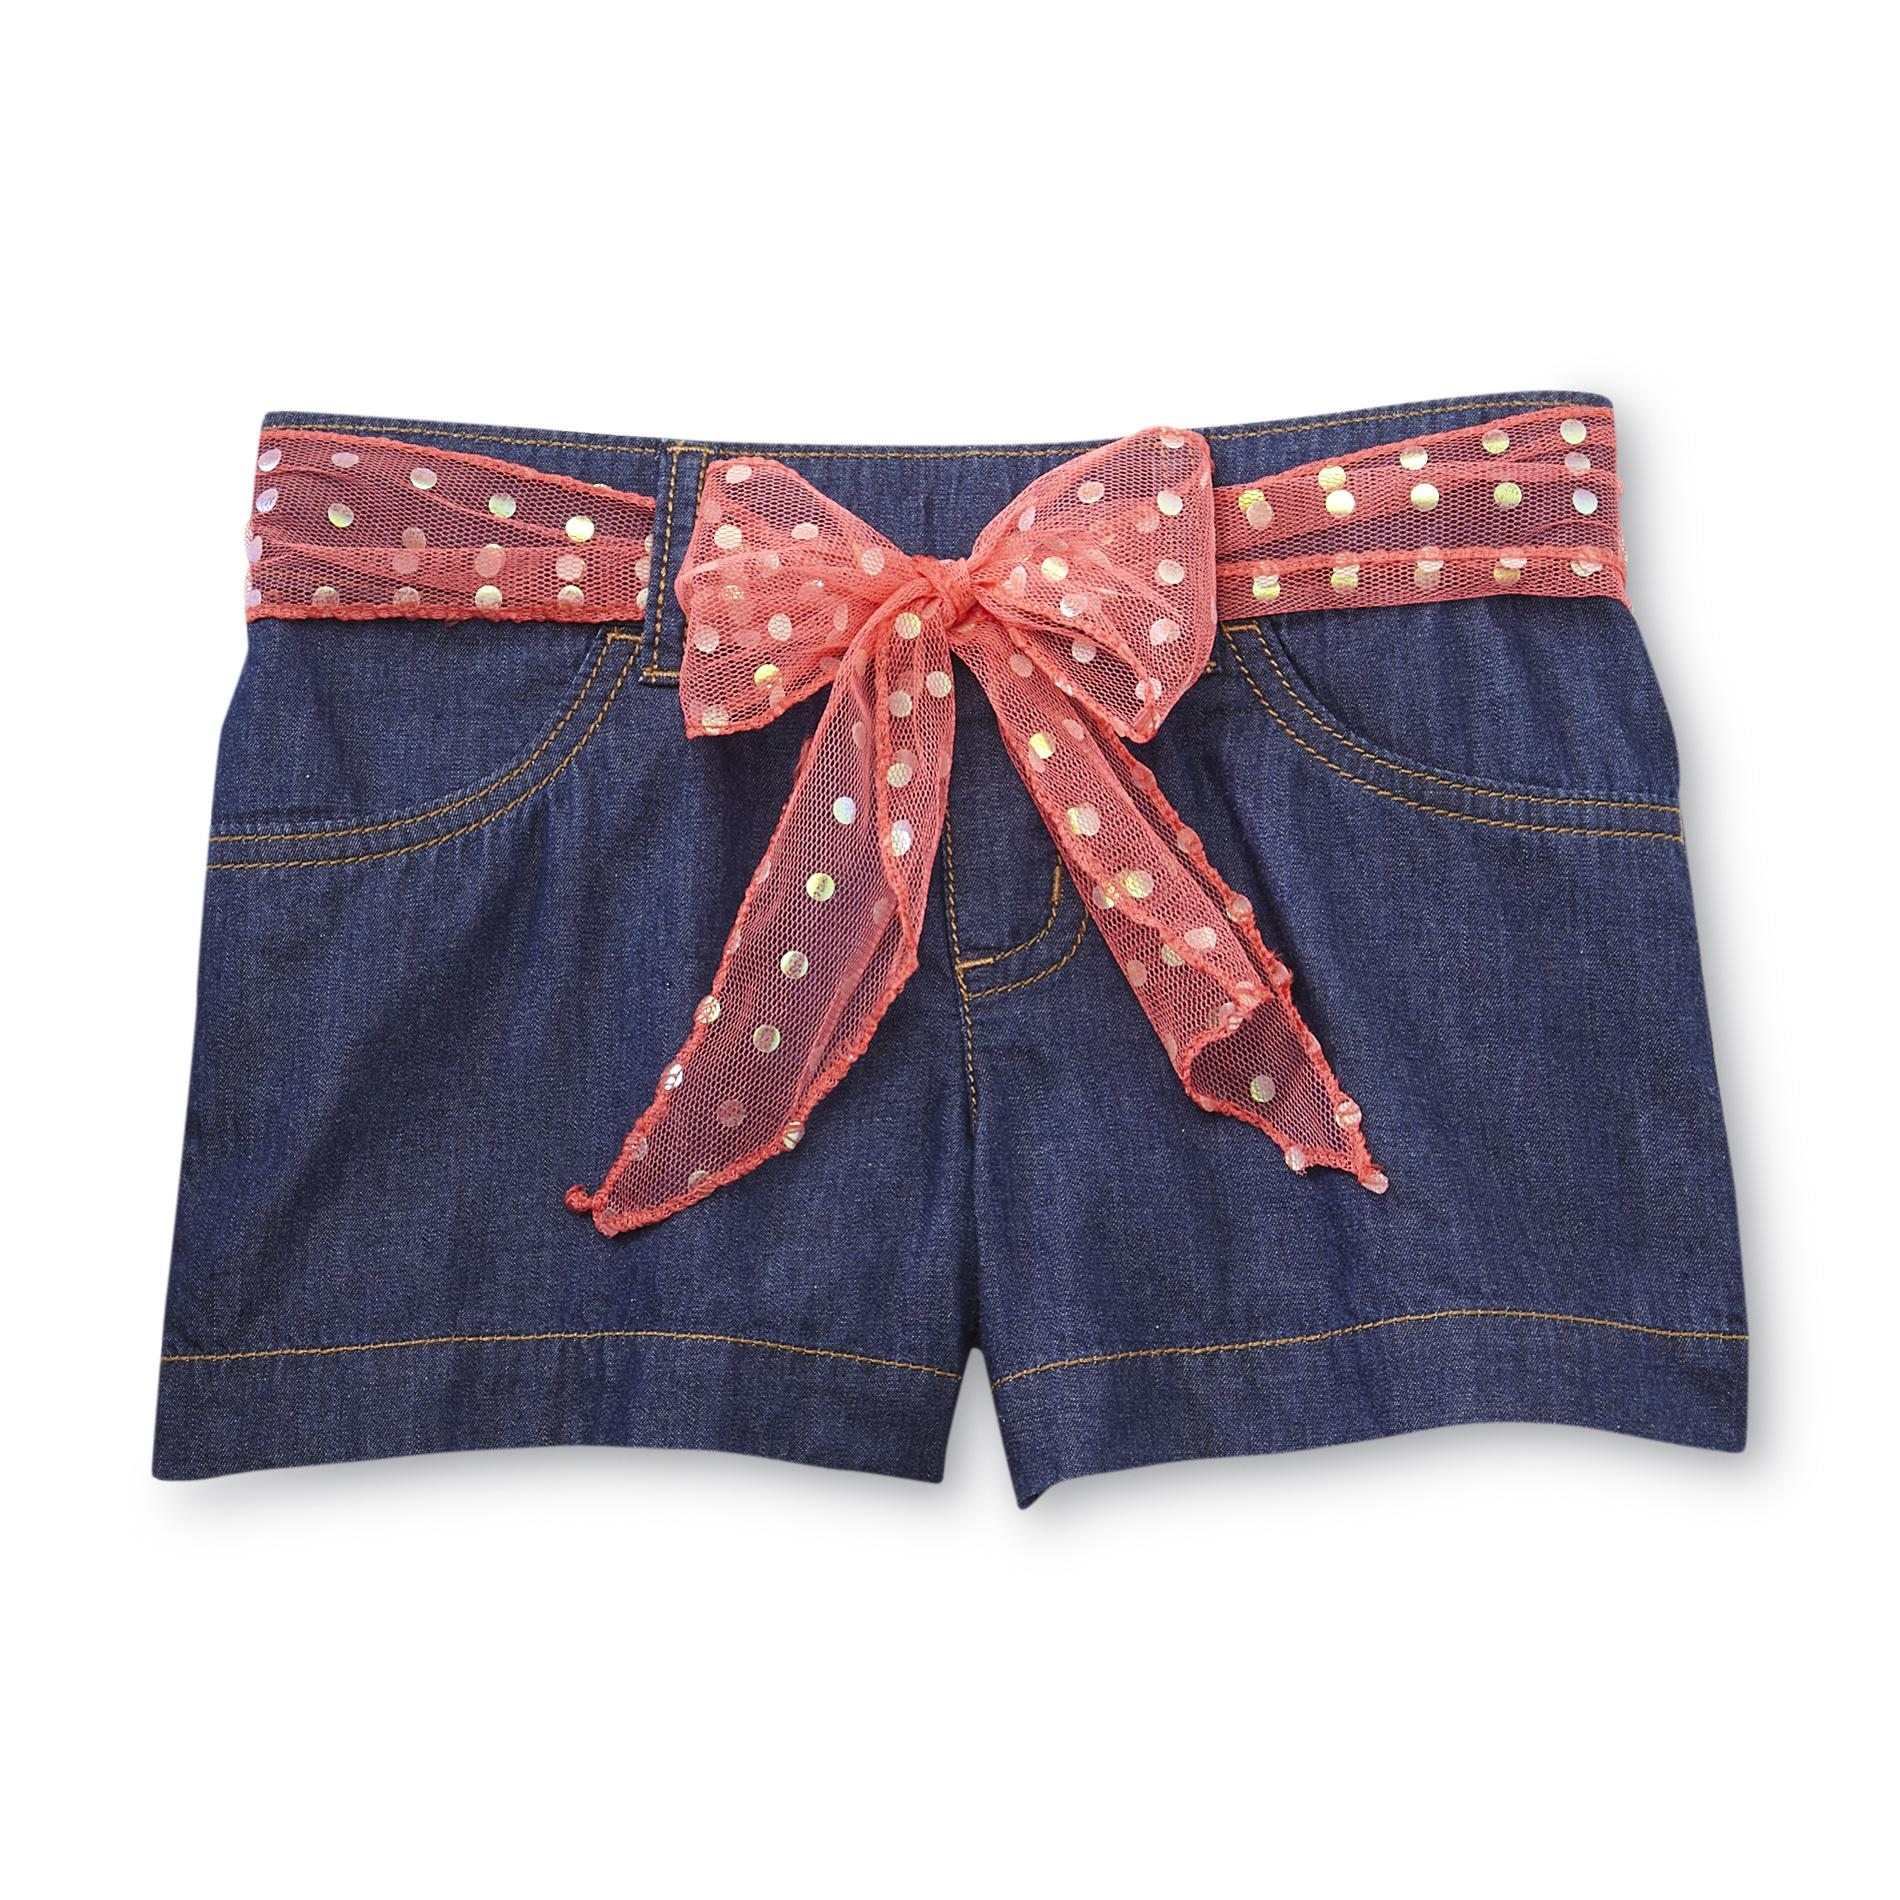 Basic Editions Girl's Denim Shorts & Belt at Kmart.com